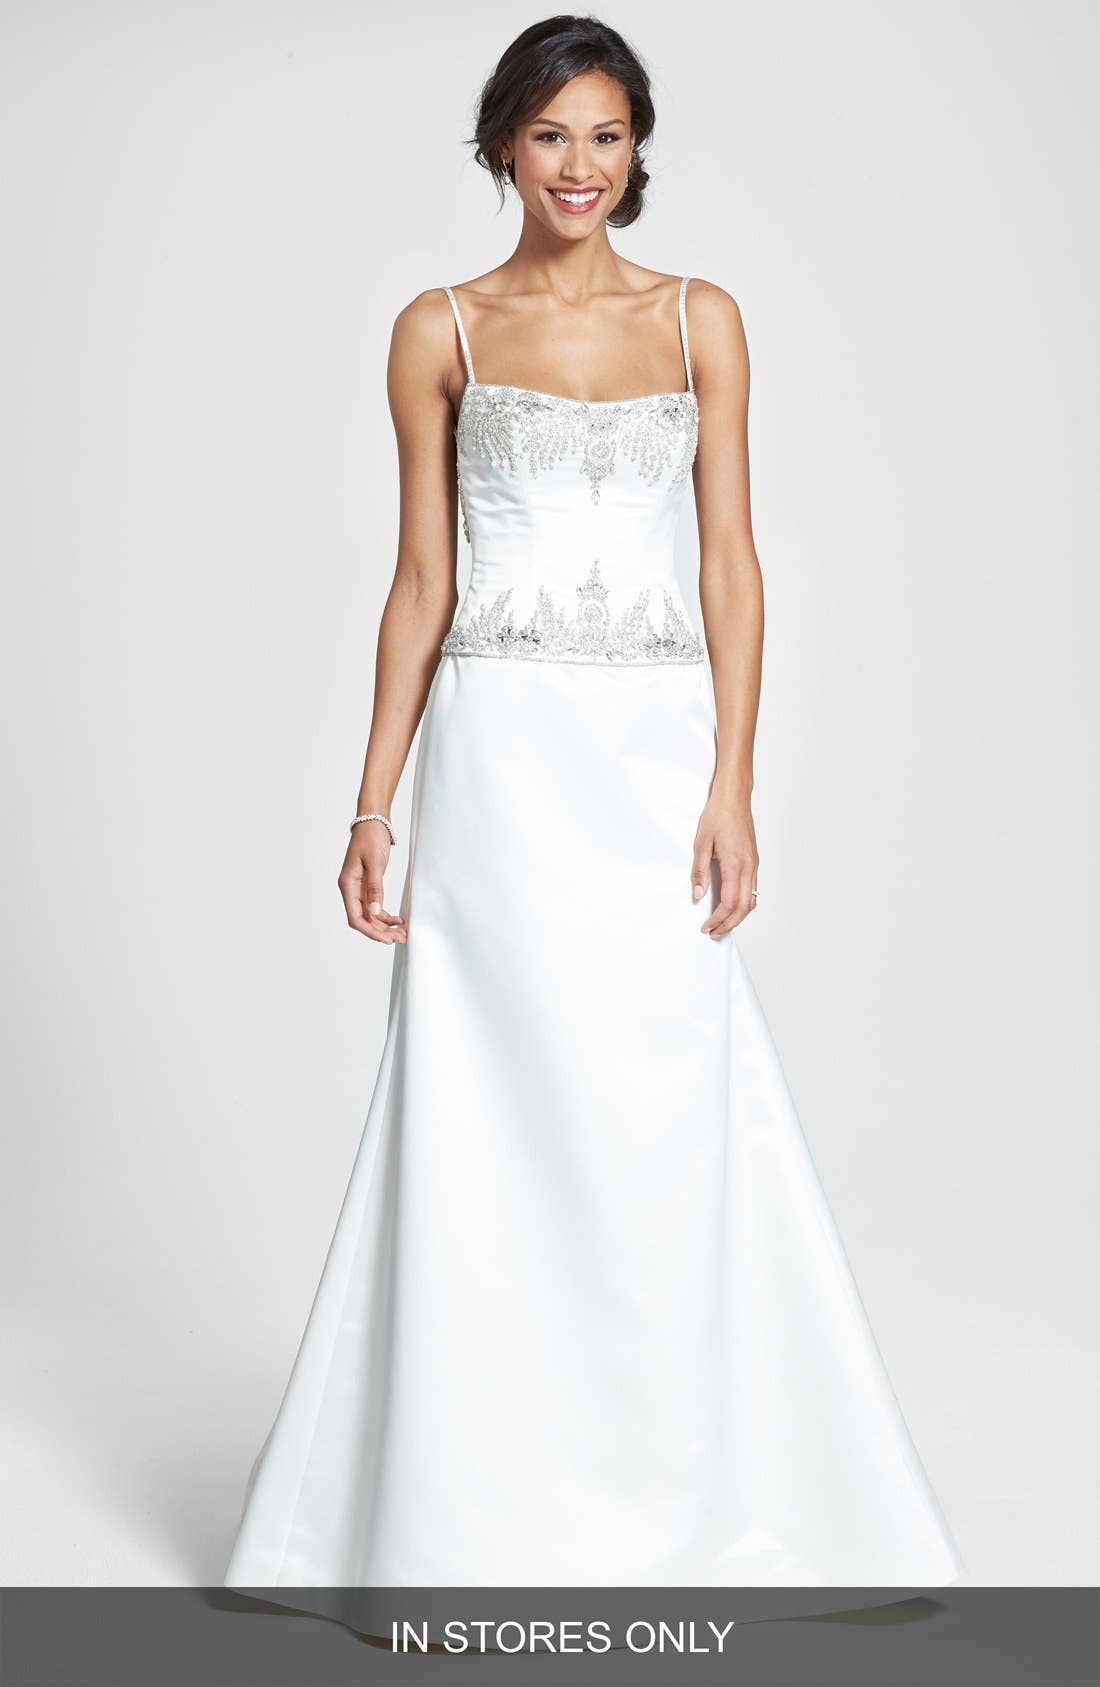 Main Image - Roses by Reem Acra 'Aster' Embellished Duchess Satin Dress (In Stores Only)